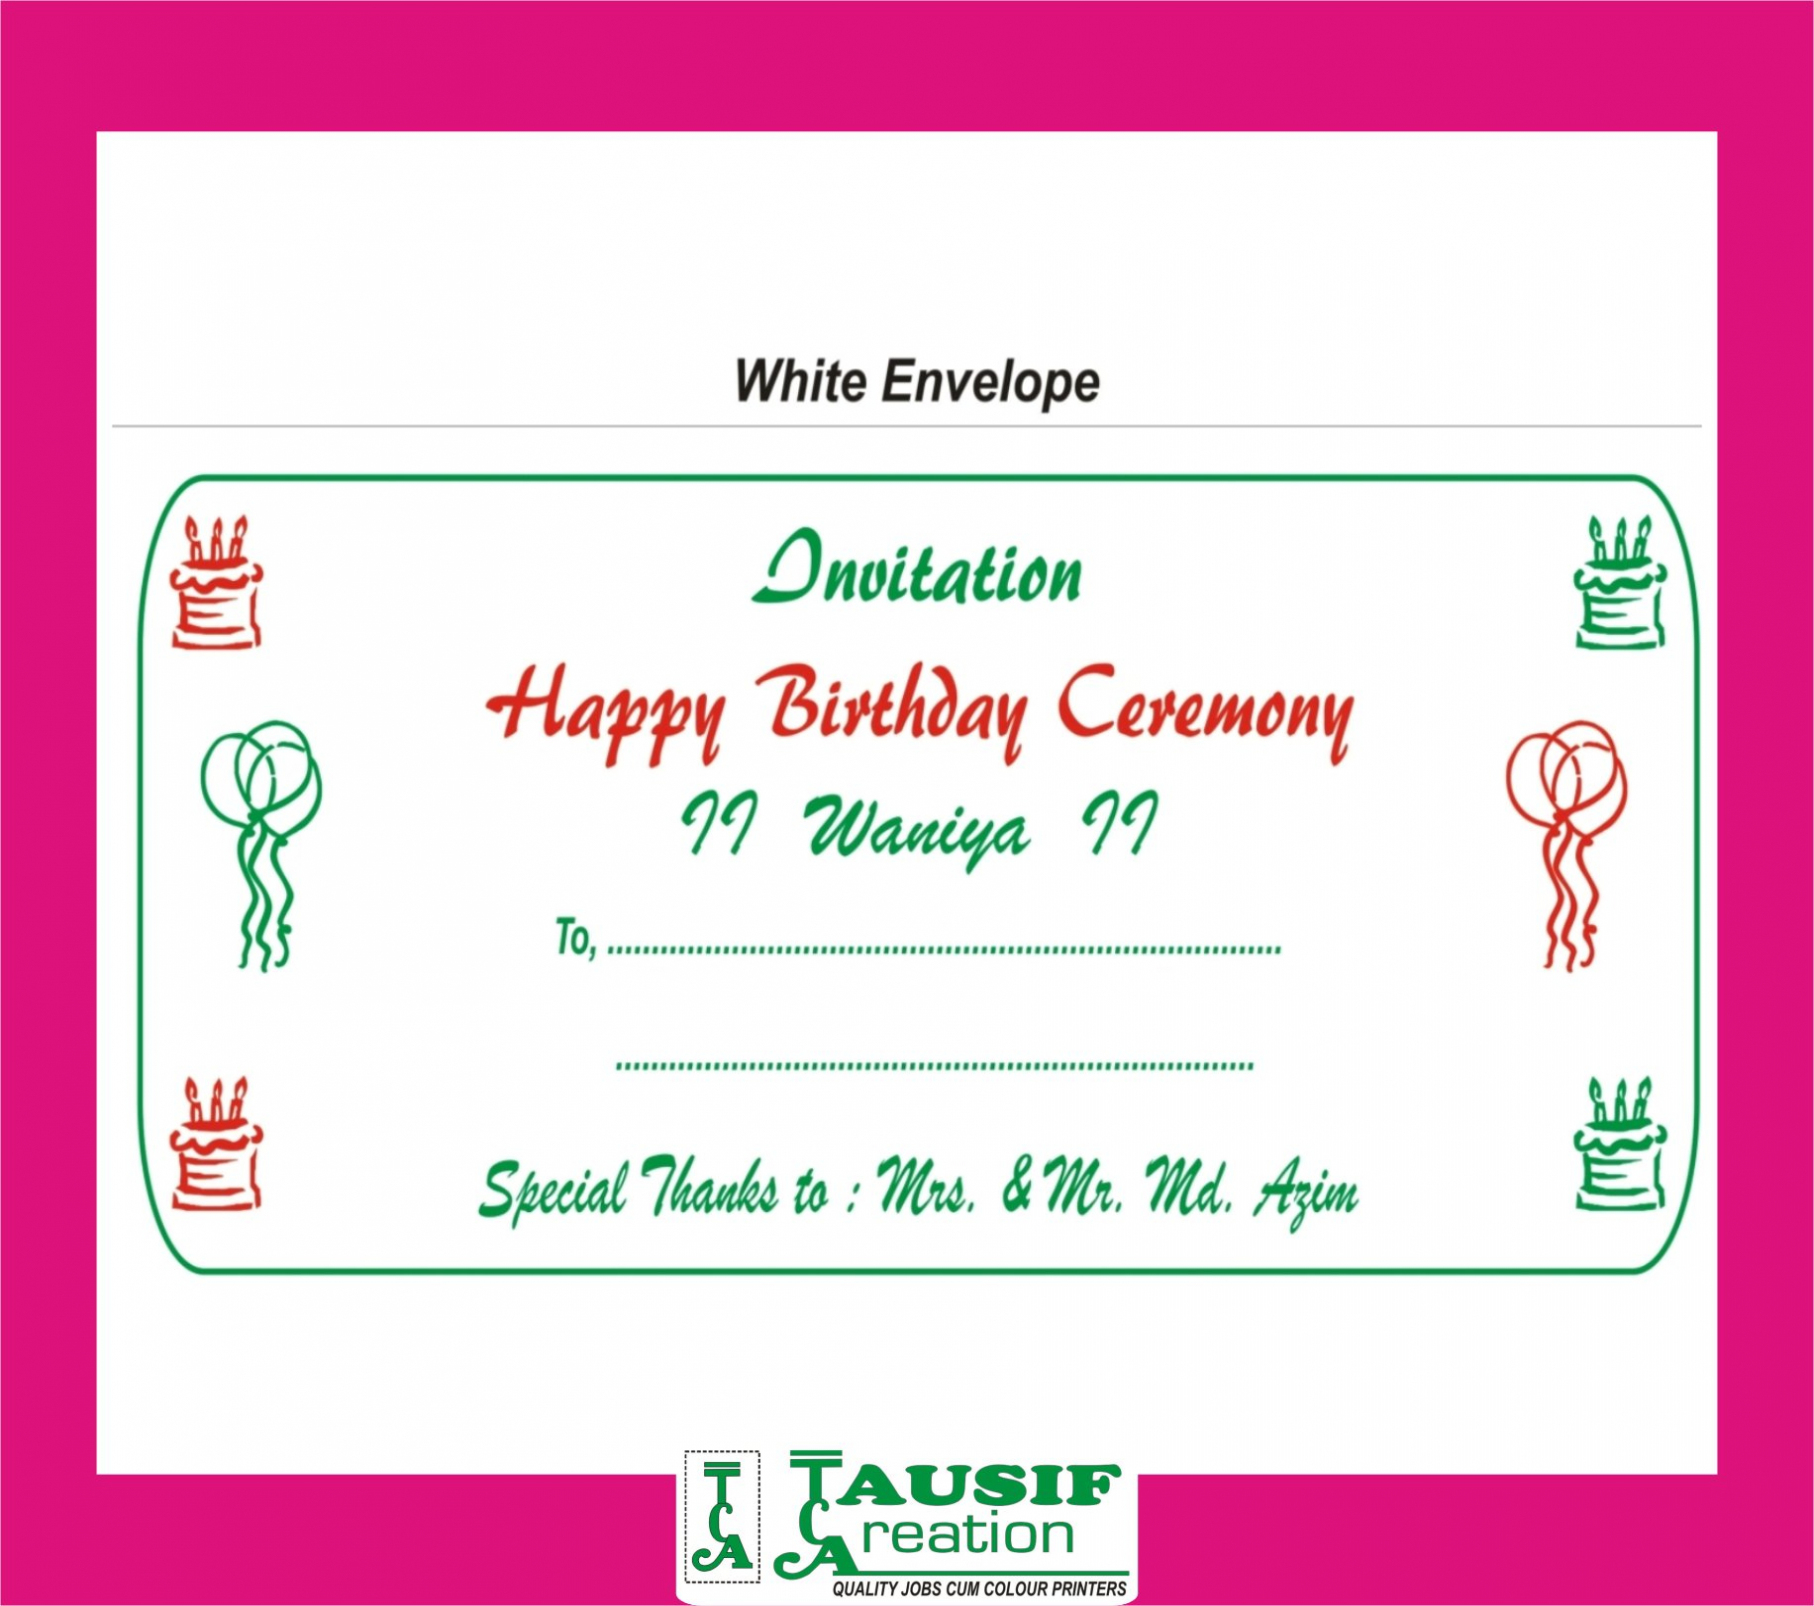 invitation card matter for birthday party ; bunch-ideas-of-invitation-card-hindi-about-birthday-hindi-birthday-invitation-card-matter-birthday-party-of-invitation-card-hindi